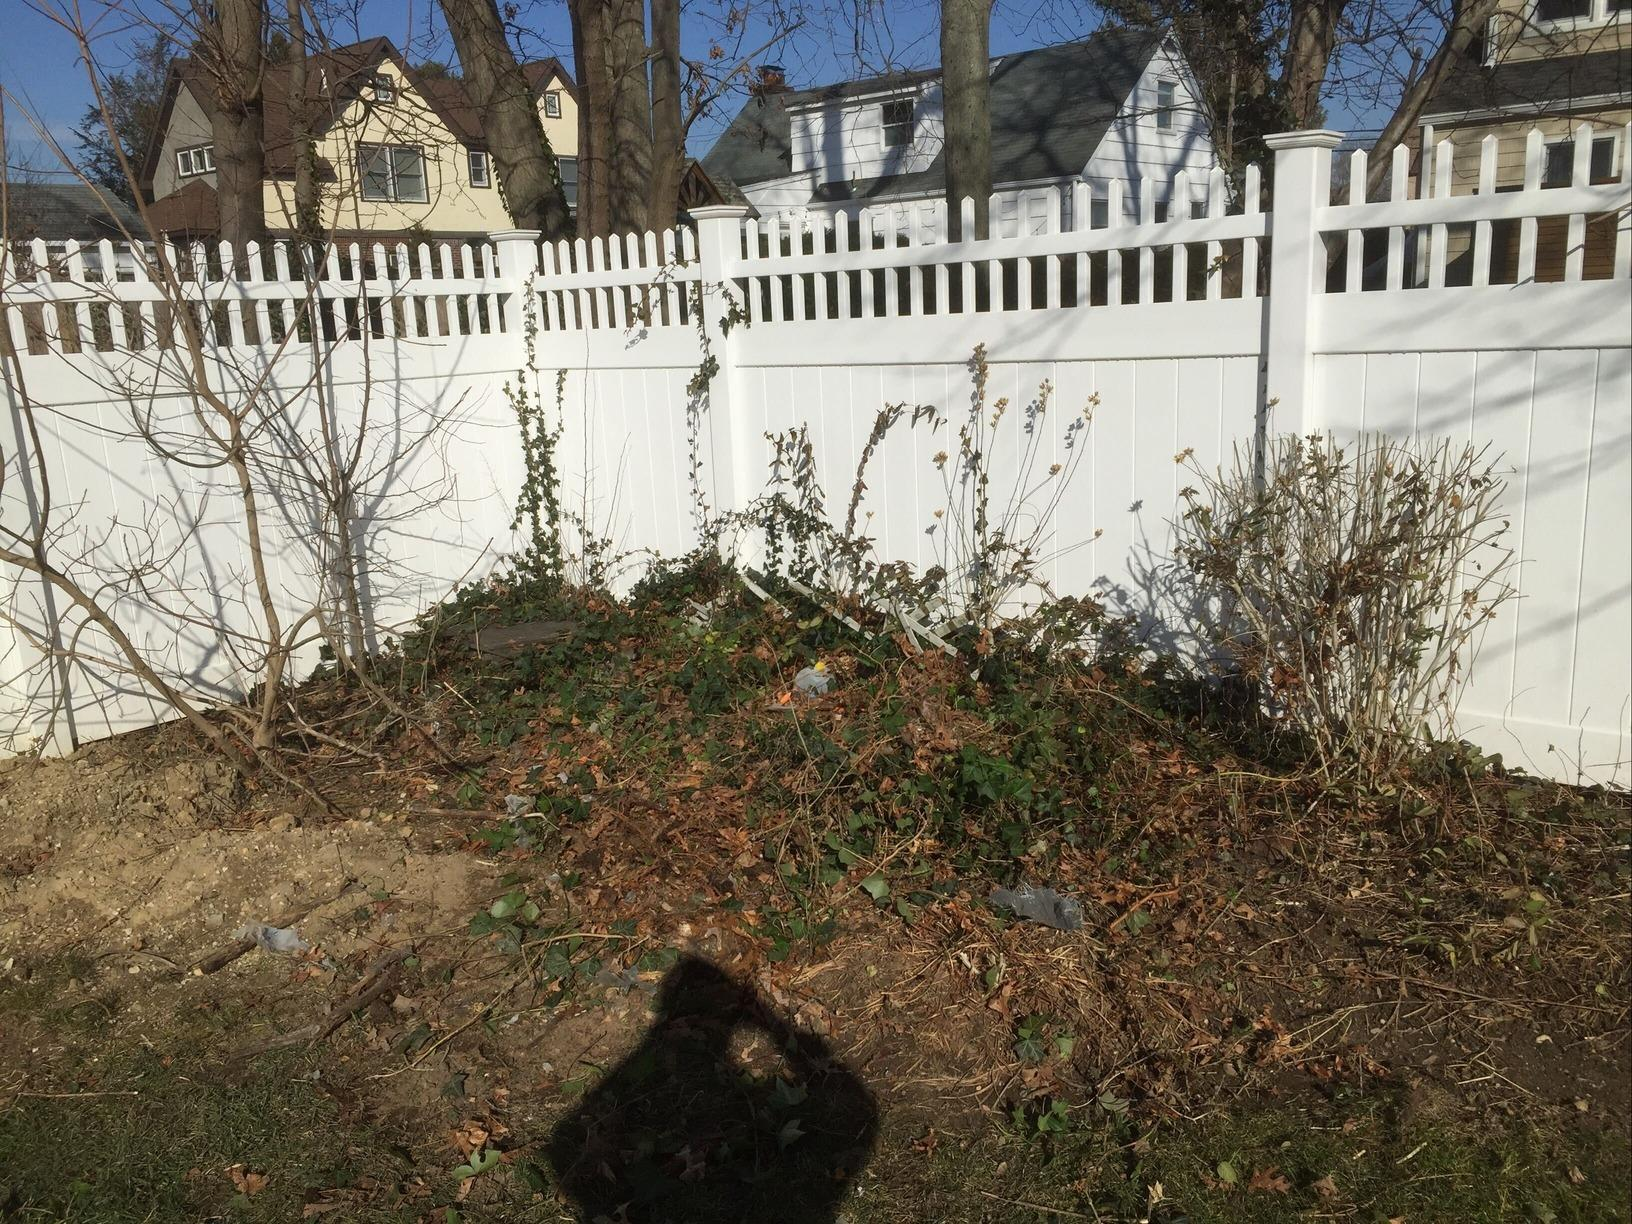 Cinder Block Removal in Bay Shore, NY - After Photo